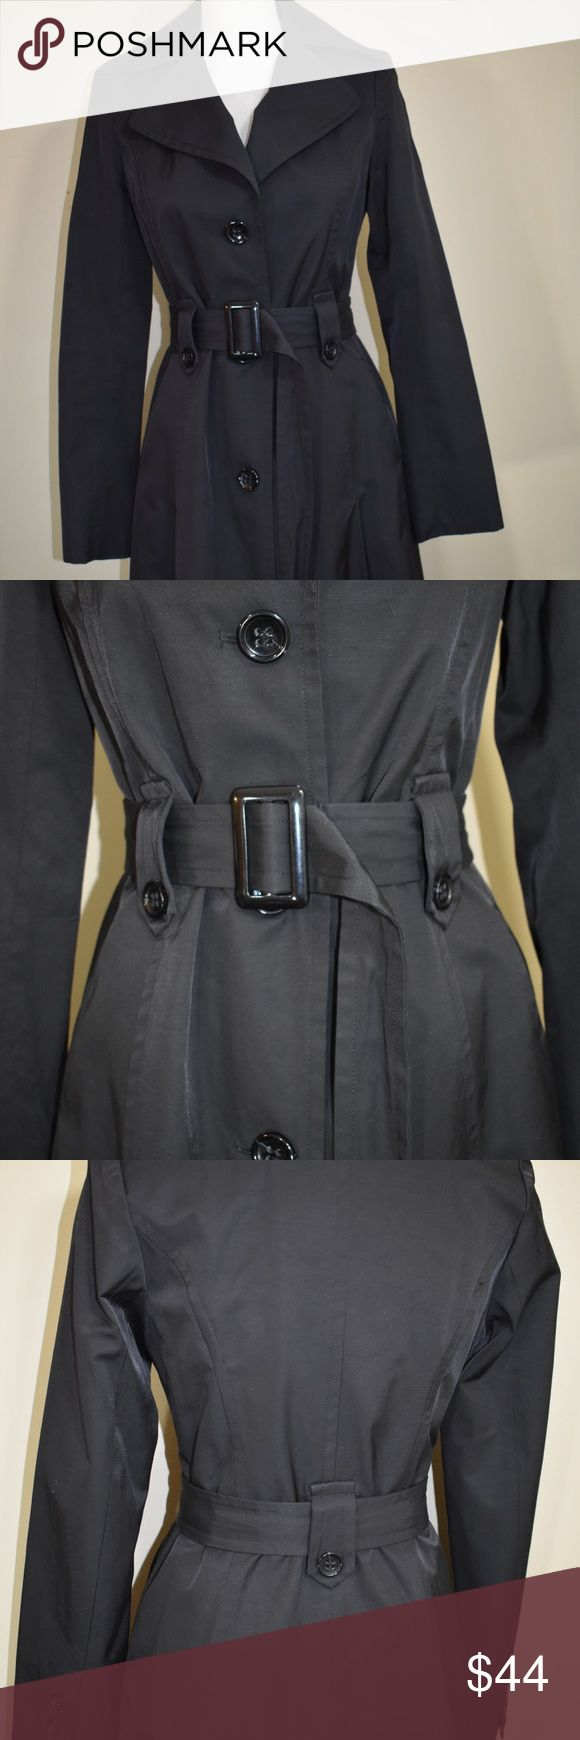 DKNY Trench Coat in Black This DKNY rain coat/trench buttons up the front and has a detachable waist belt. This is an XS black classy jacket. Perfect condition! Dkny Jackets & Coats Trench Coats